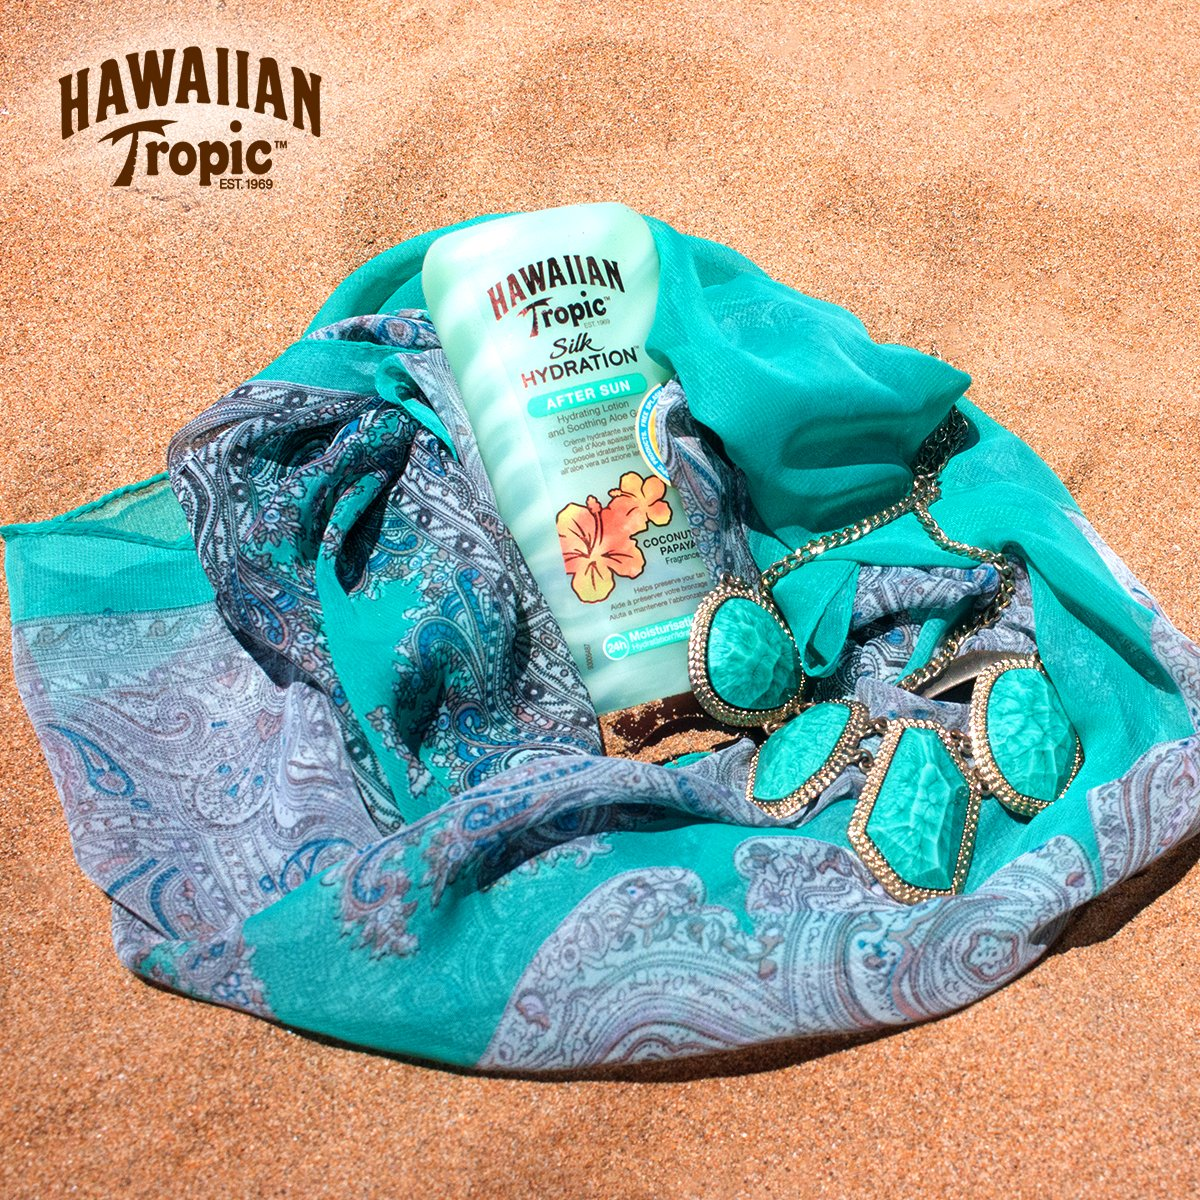 Hawaiian Tropic Malta product 04